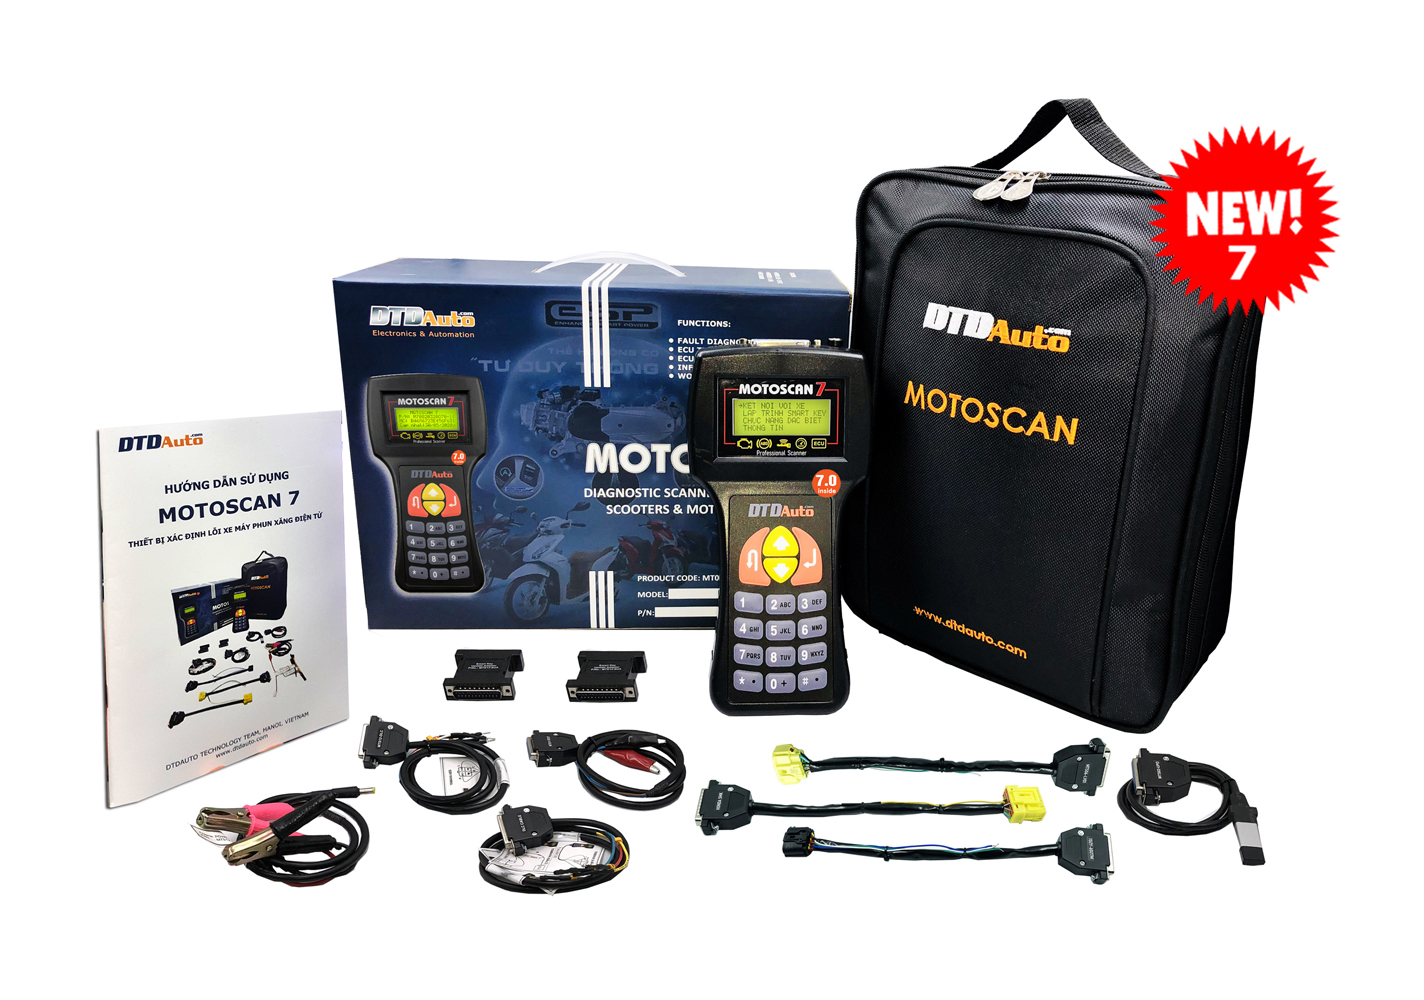 MOTOSCAN - SCANNER FOR PGM-FI/FI MOTORCYCLES & SCOOTERS